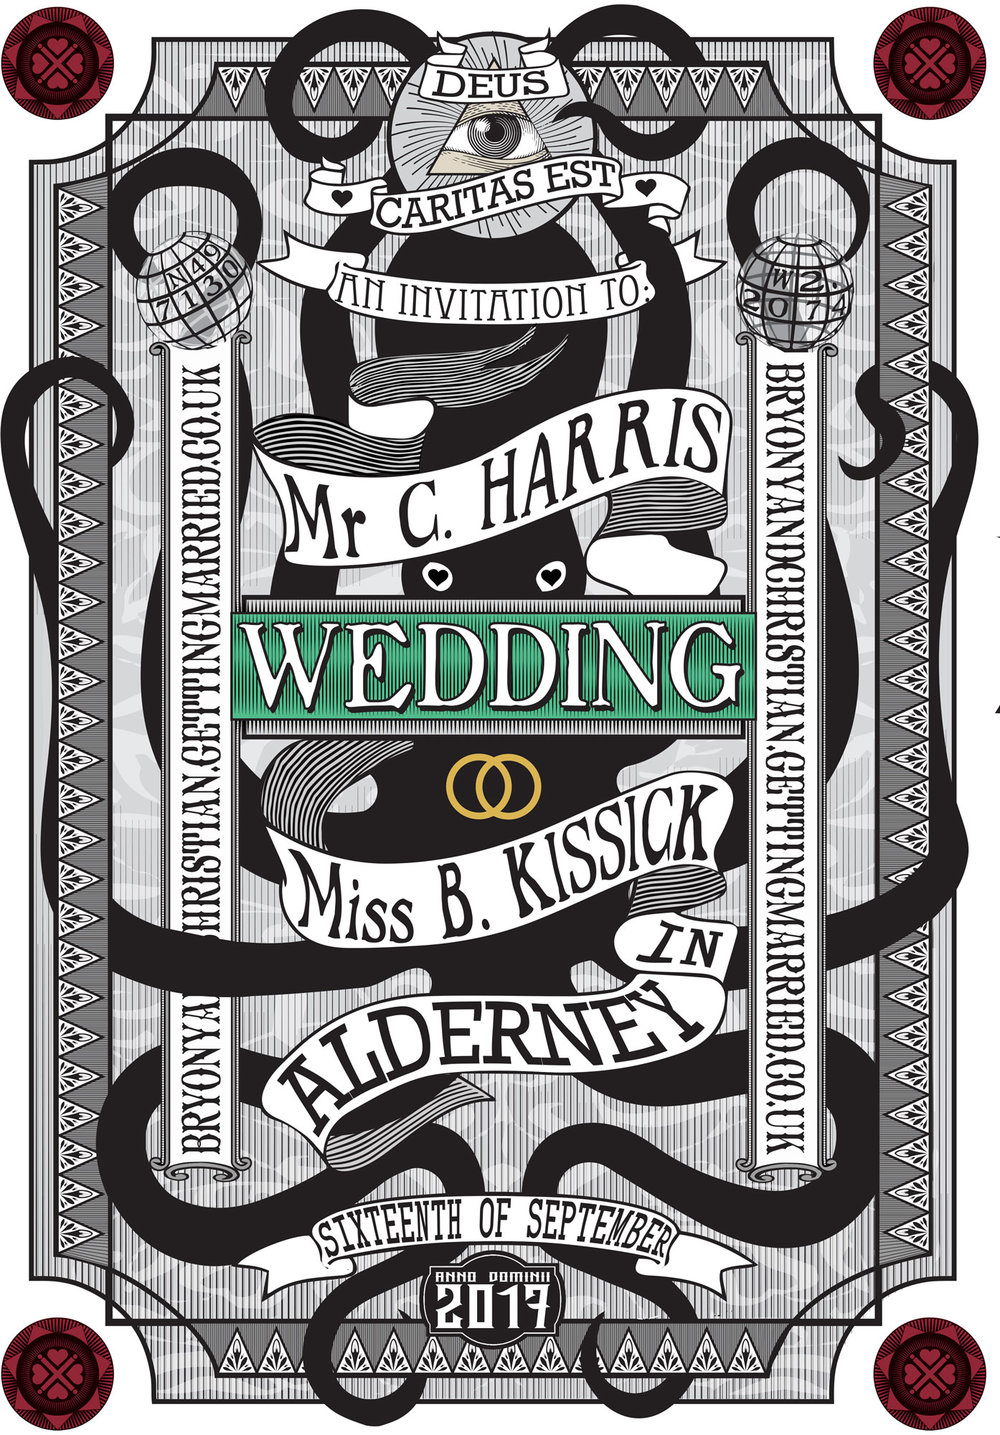 Wedding invitation for the Ravenscrofts